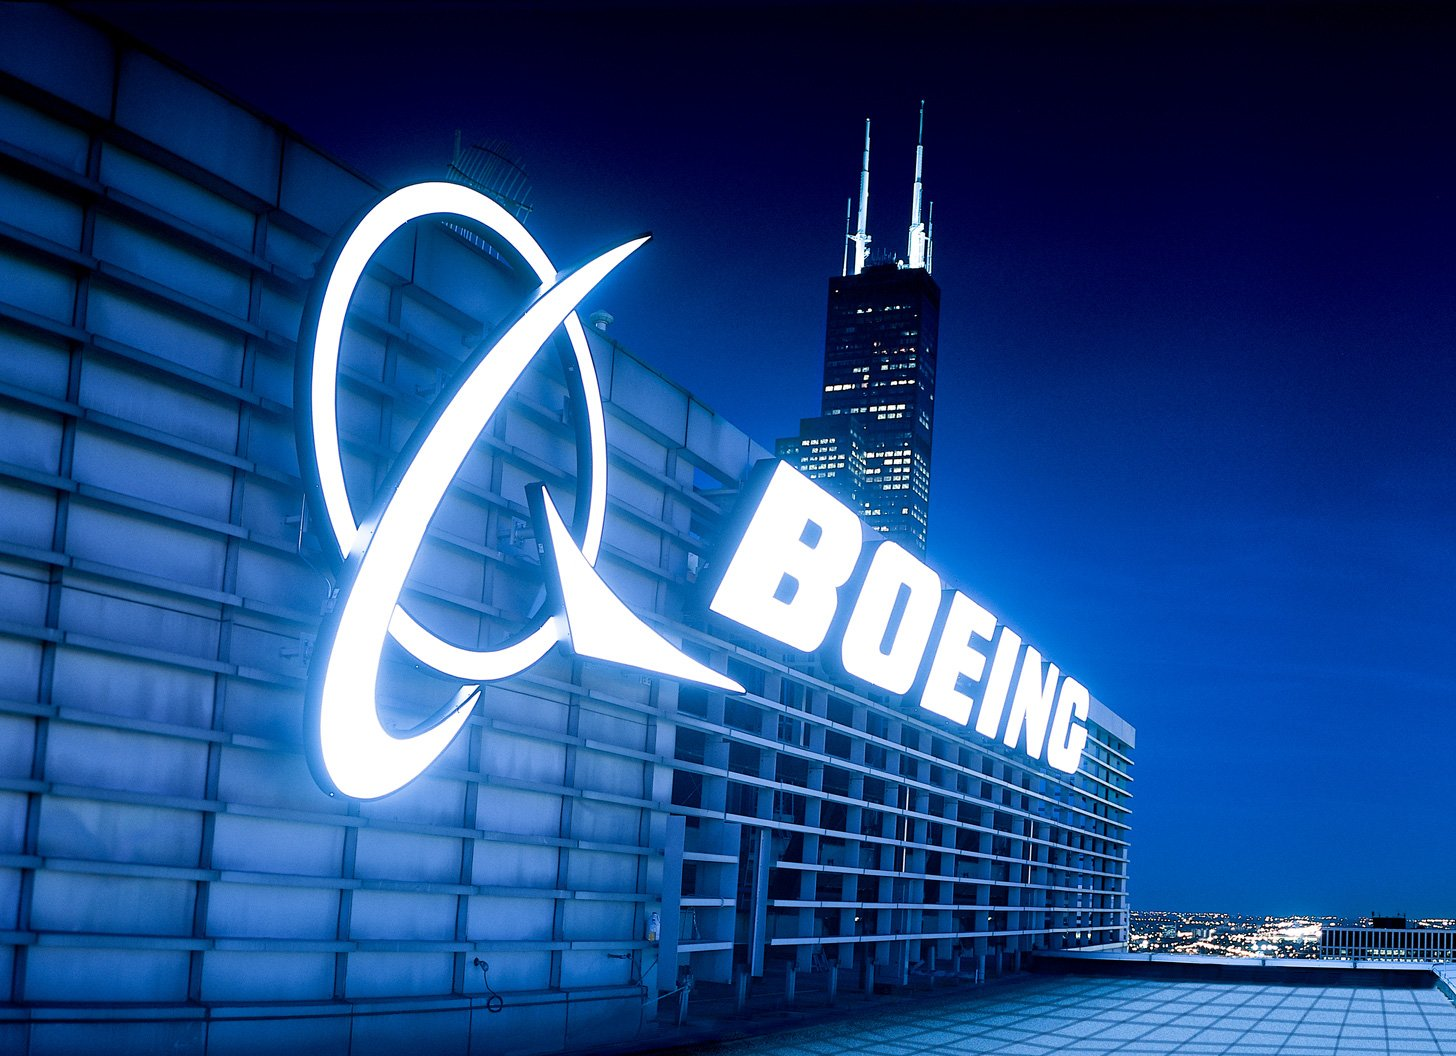 Boeing announces major organization and leadership changes